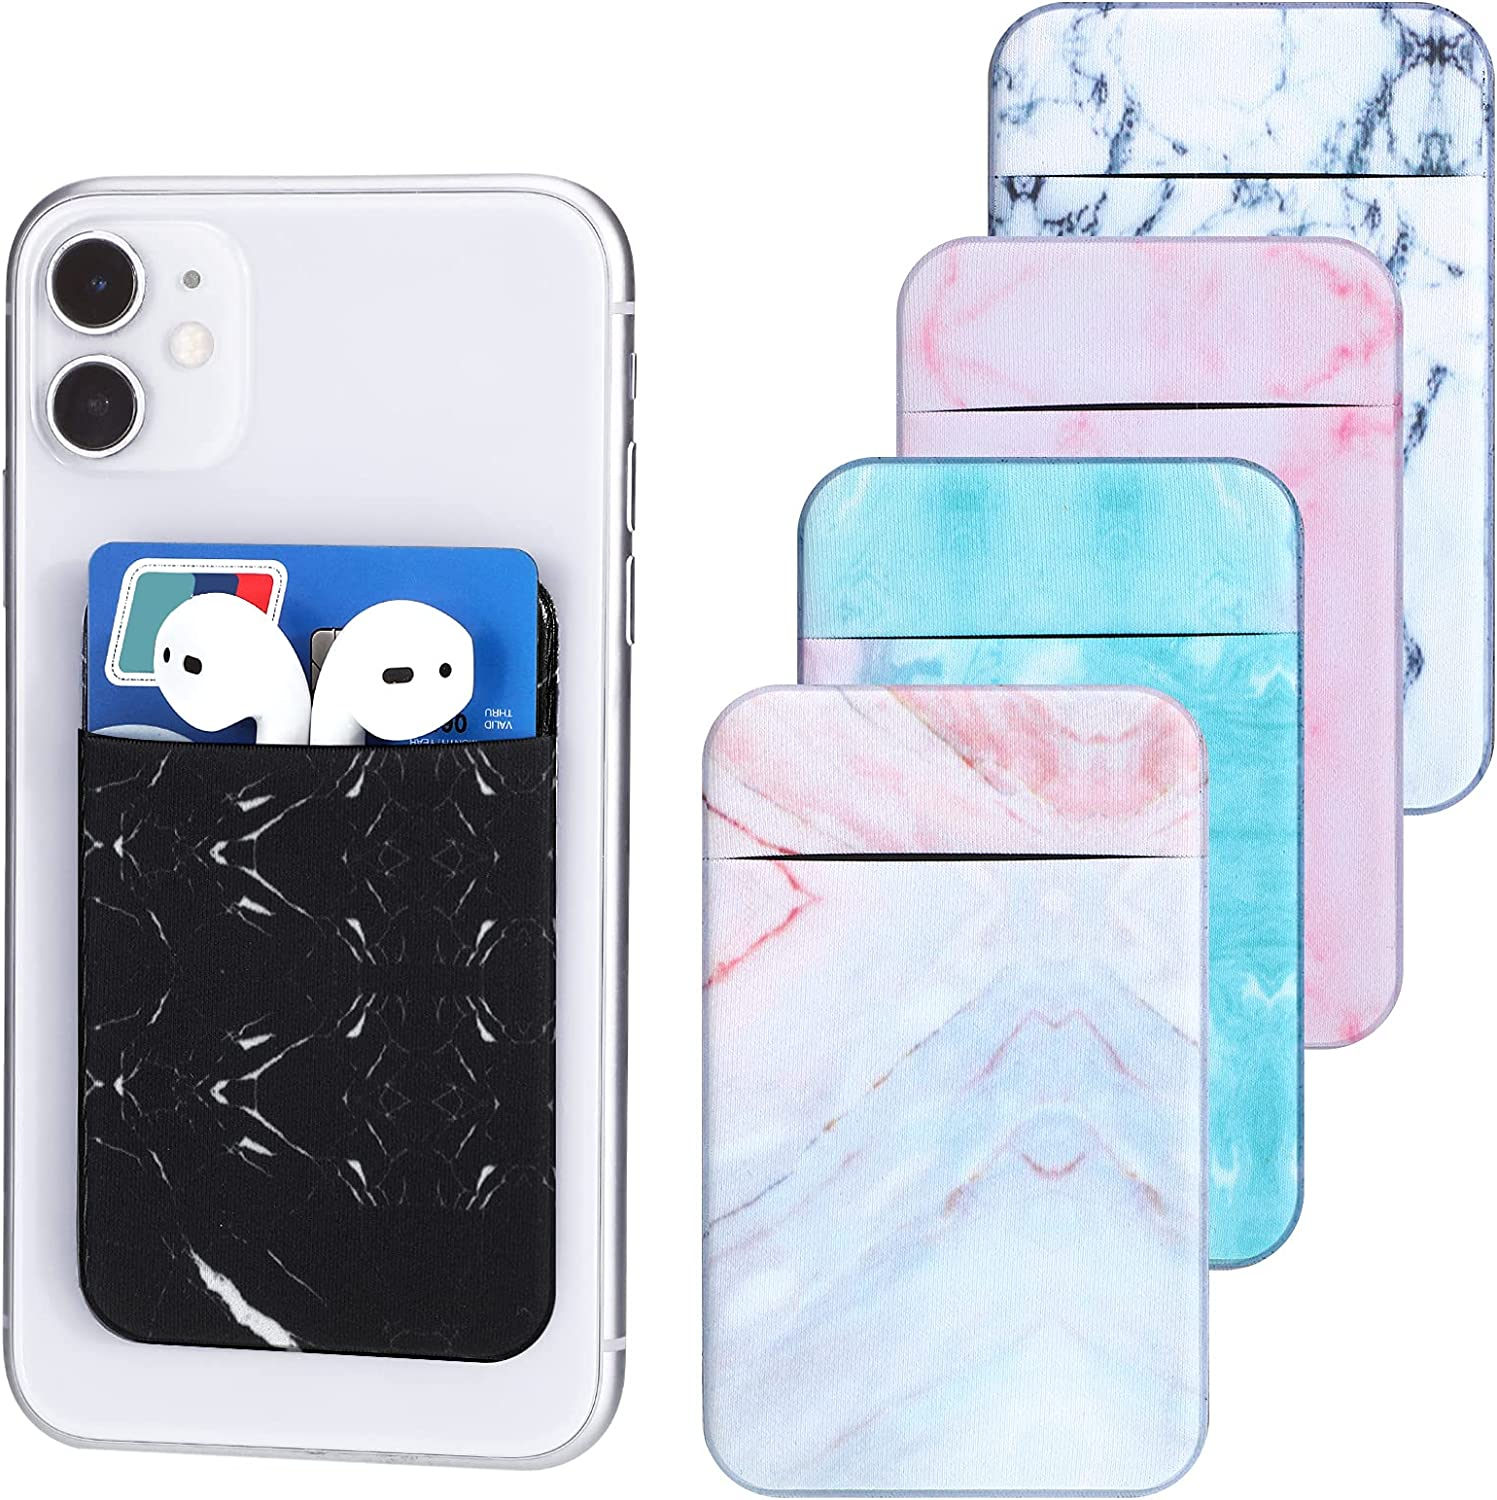 Kanayu 5 Pieces Marble Phone Card Holder Stretch Card Sleeve Credit Card Phone Wallet Adhesive Phone Pouch Pocket for Back of Most Smartphones, 5